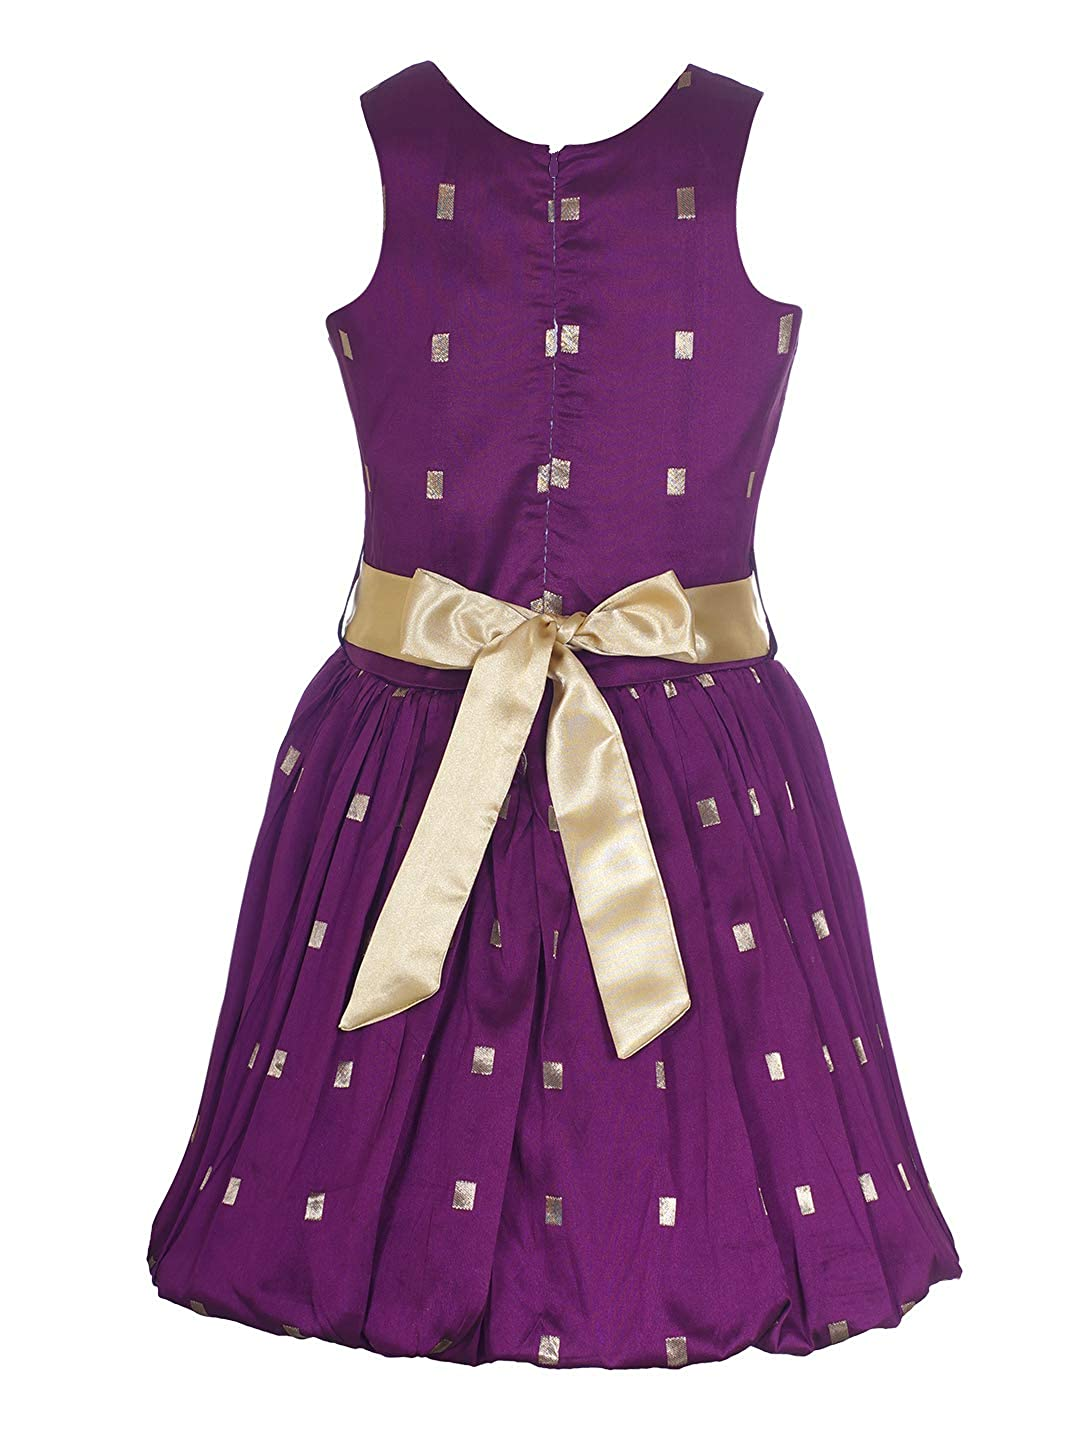 ddad9d1a Naughty Ninos Girls Purple Embroidered Flaired Dress for 3 to 12 Years:  Amazon.in: Clothing & Accessories